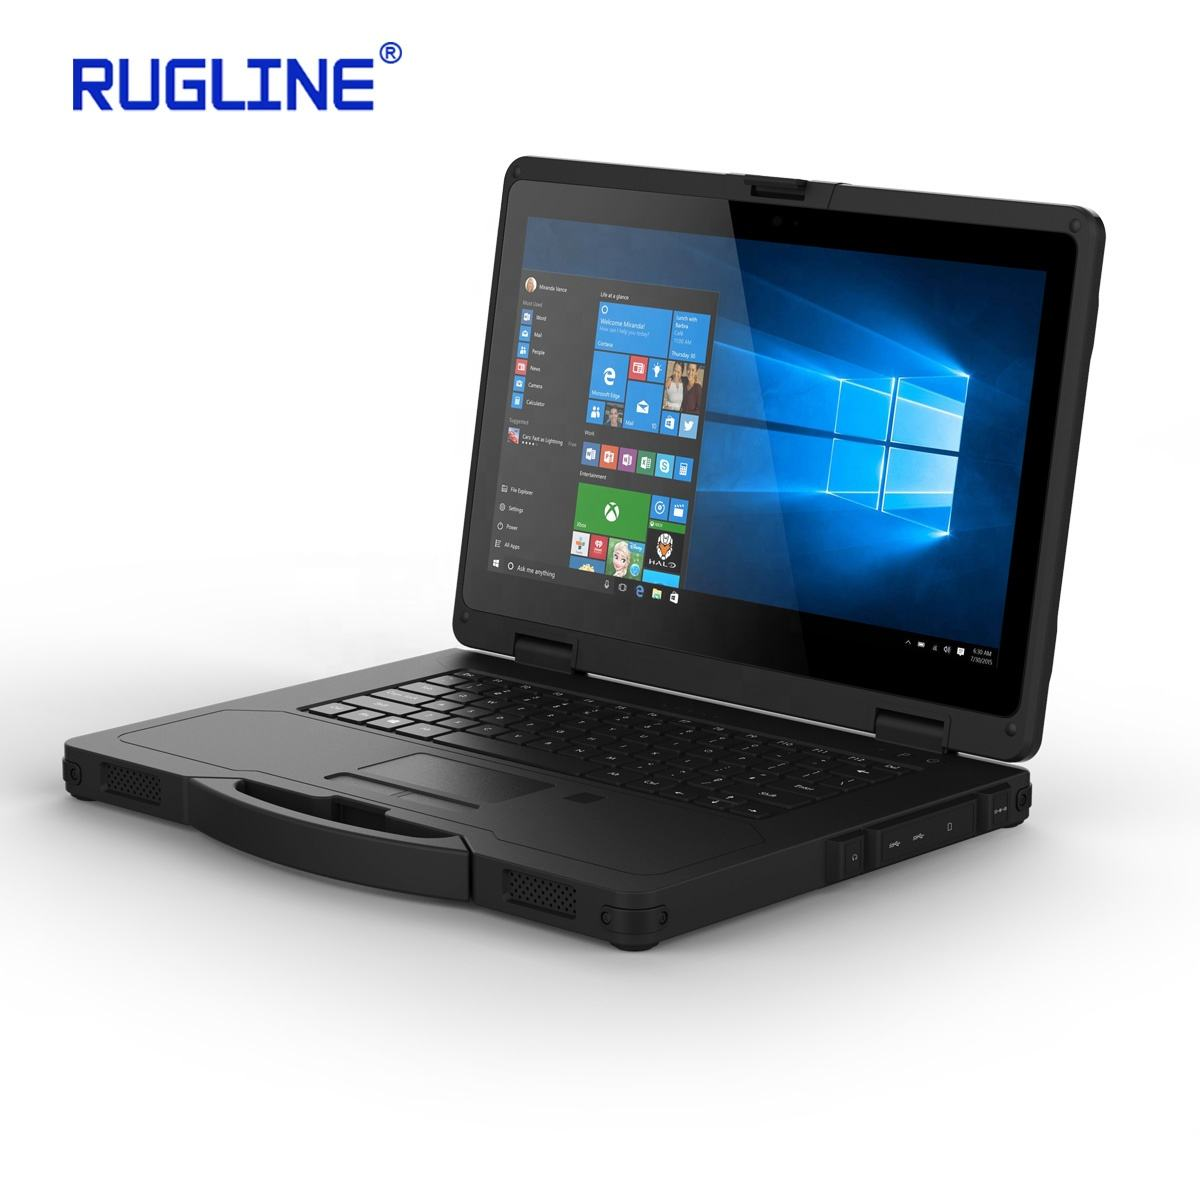 RUGLINE 14 Inch Industrial Rugged Laptop PC Rugged Notebook with Serial Port Keyboard RJ45 port Outdoor Durable Use